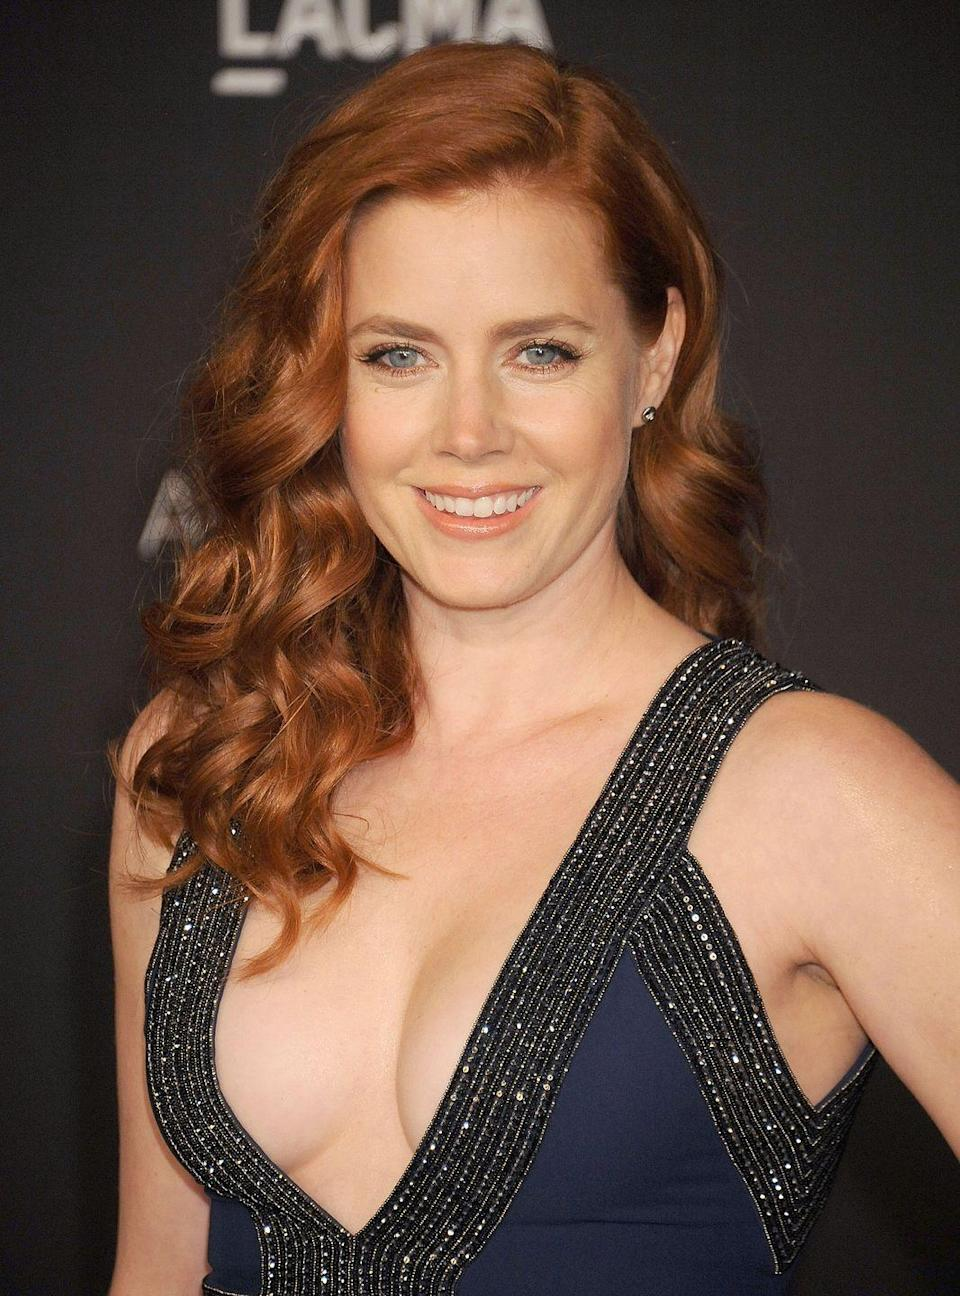 """<p>Before she was being nominated for awards, Amy Adams was one of the many celebrities who got their start as Hooters girls. """"It was a great job out of high school,"""" she told <em>Entertainment Tonight</em>, <em><a href=""""https://www.dailymail.co.uk/tvshowbiz/article-2907062/Amy-Adams-reveals-used-curves-Hooters-waitress.html"""" rel=""""nofollow noopener"""" target=""""_blank"""" data-ylk=""""slk:The Daily Mail"""" class=""""link rapid-noclick-resp"""">The Daily Mail</a></em> reports. """"I was a hostess at first and then I waited tables for a while and it was a great way to earn money for a car.""""</p>"""